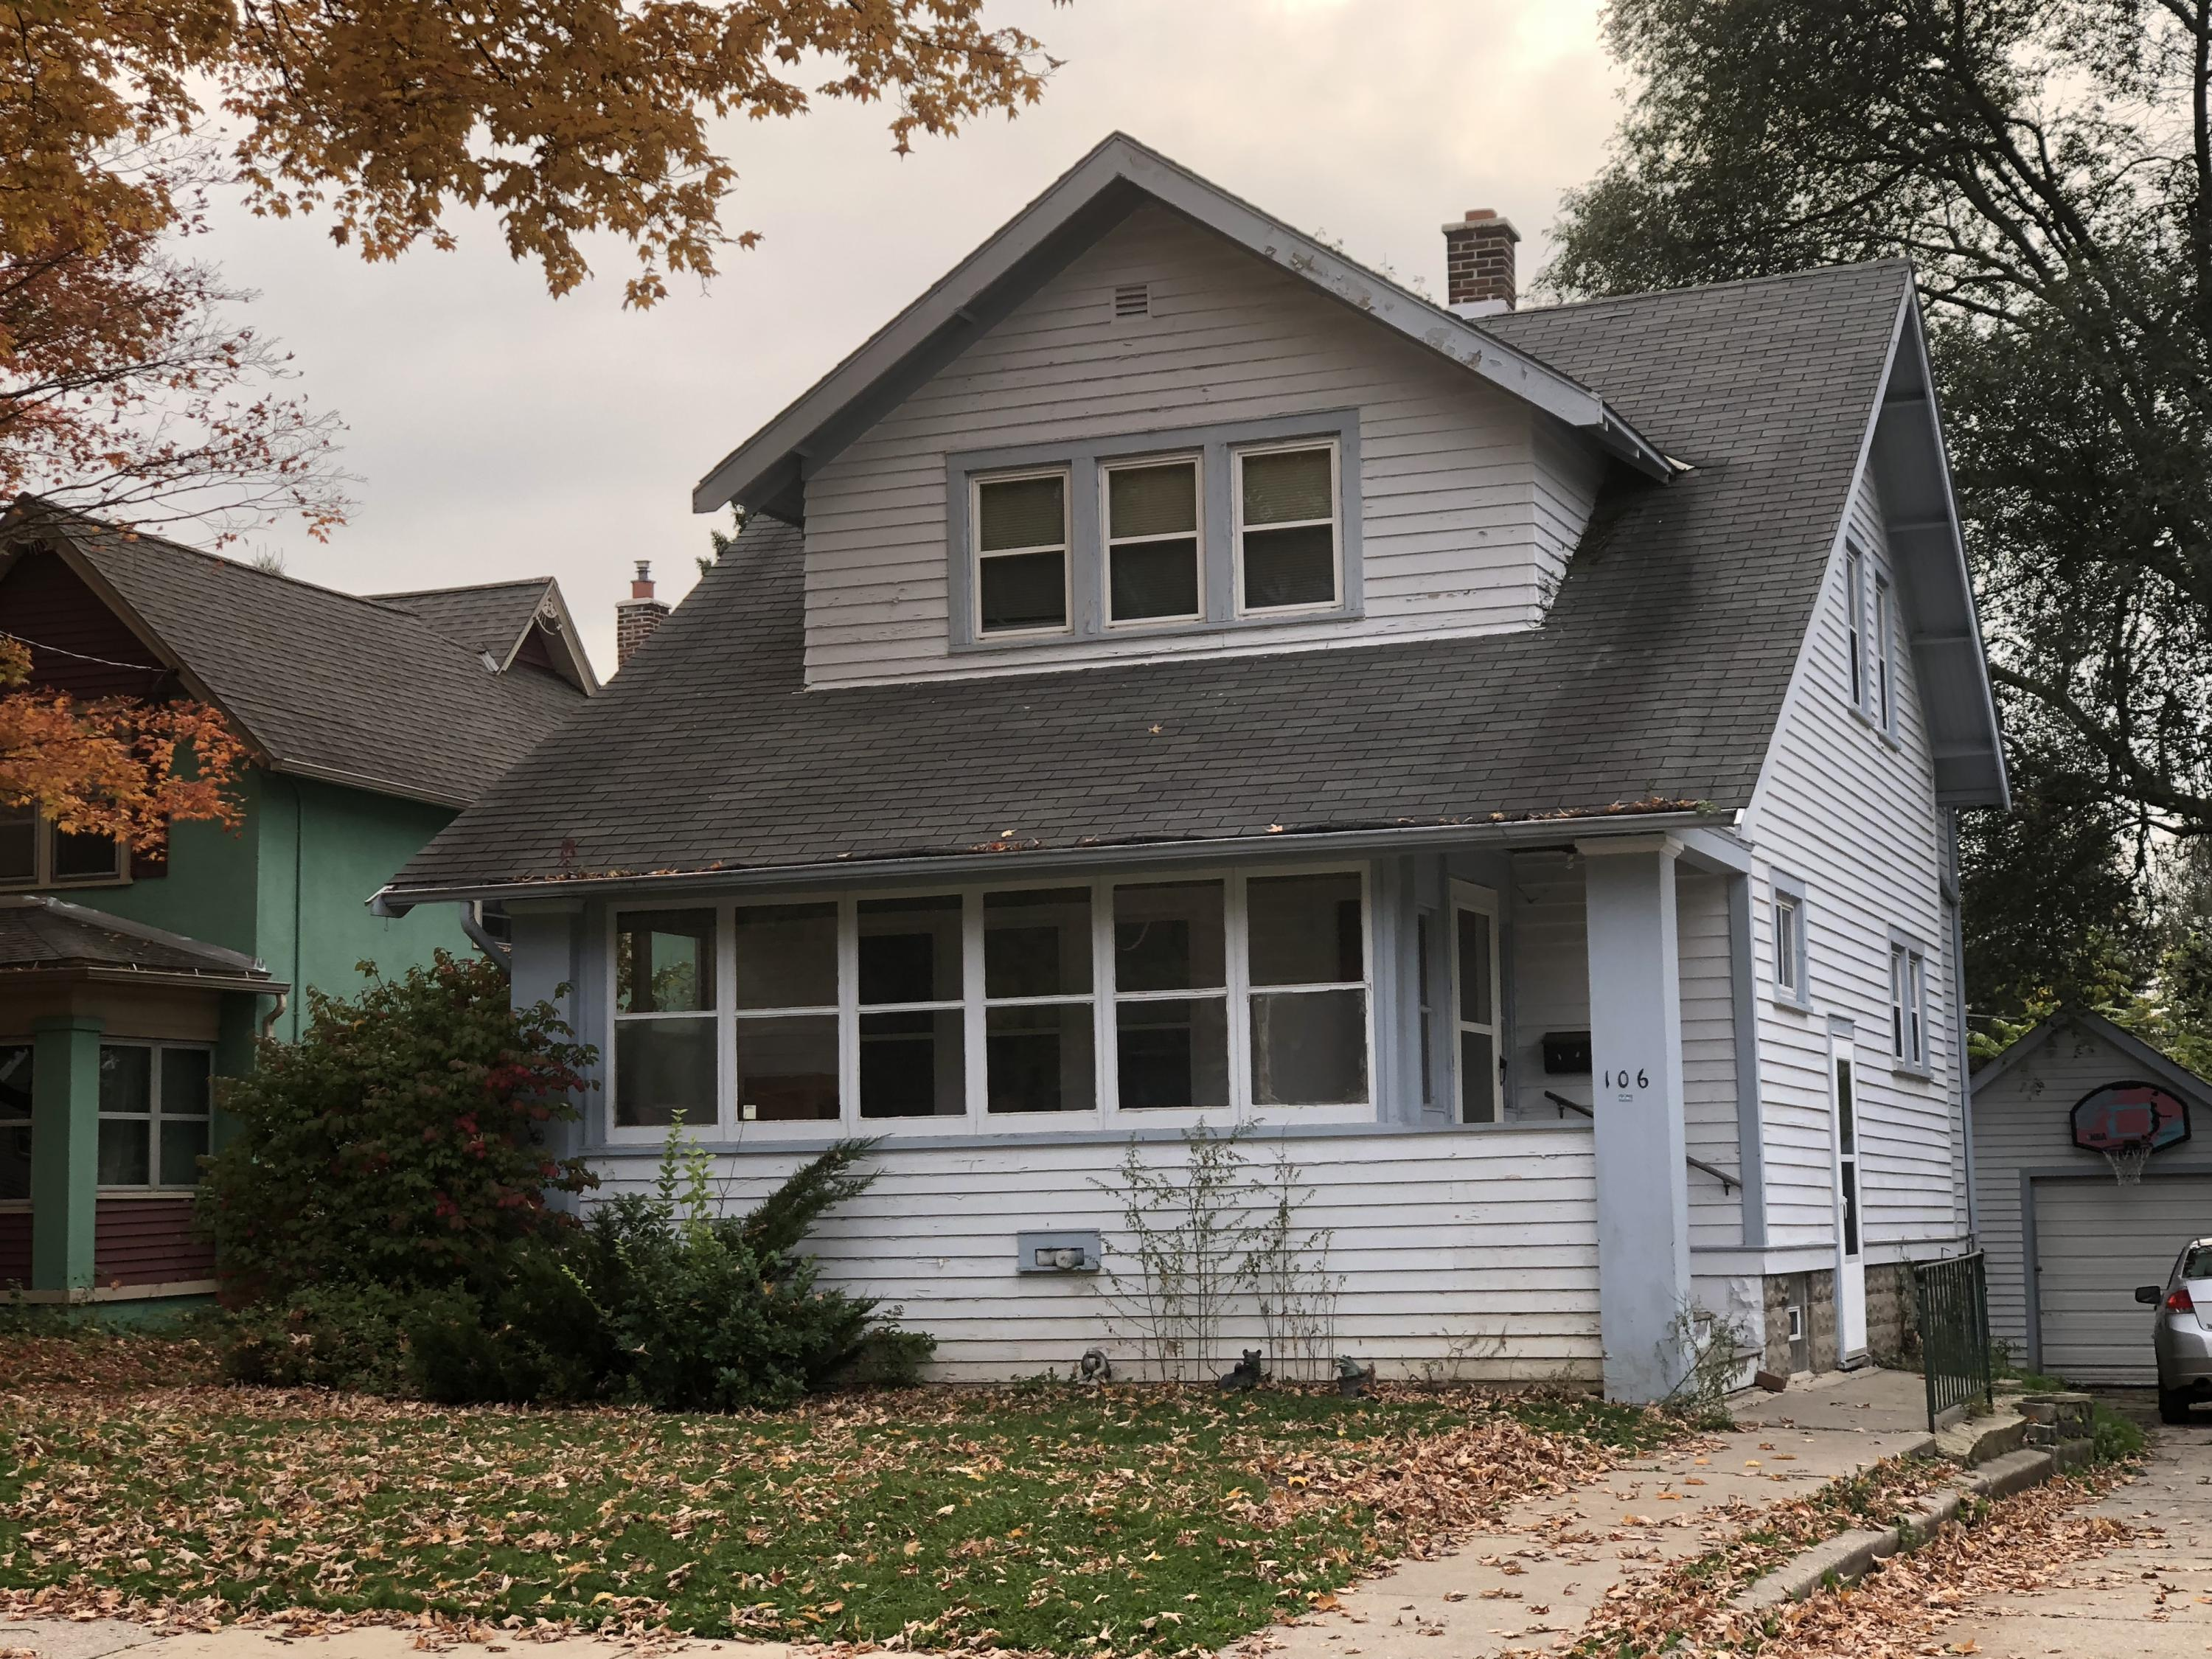 106 Columbia Ave, Waukesha, Wisconsin 53186, 4 Bedrooms Bedrooms, ,1 BathroomBathrooms,Single-Family,For Sale,Columbia Ave,1610361